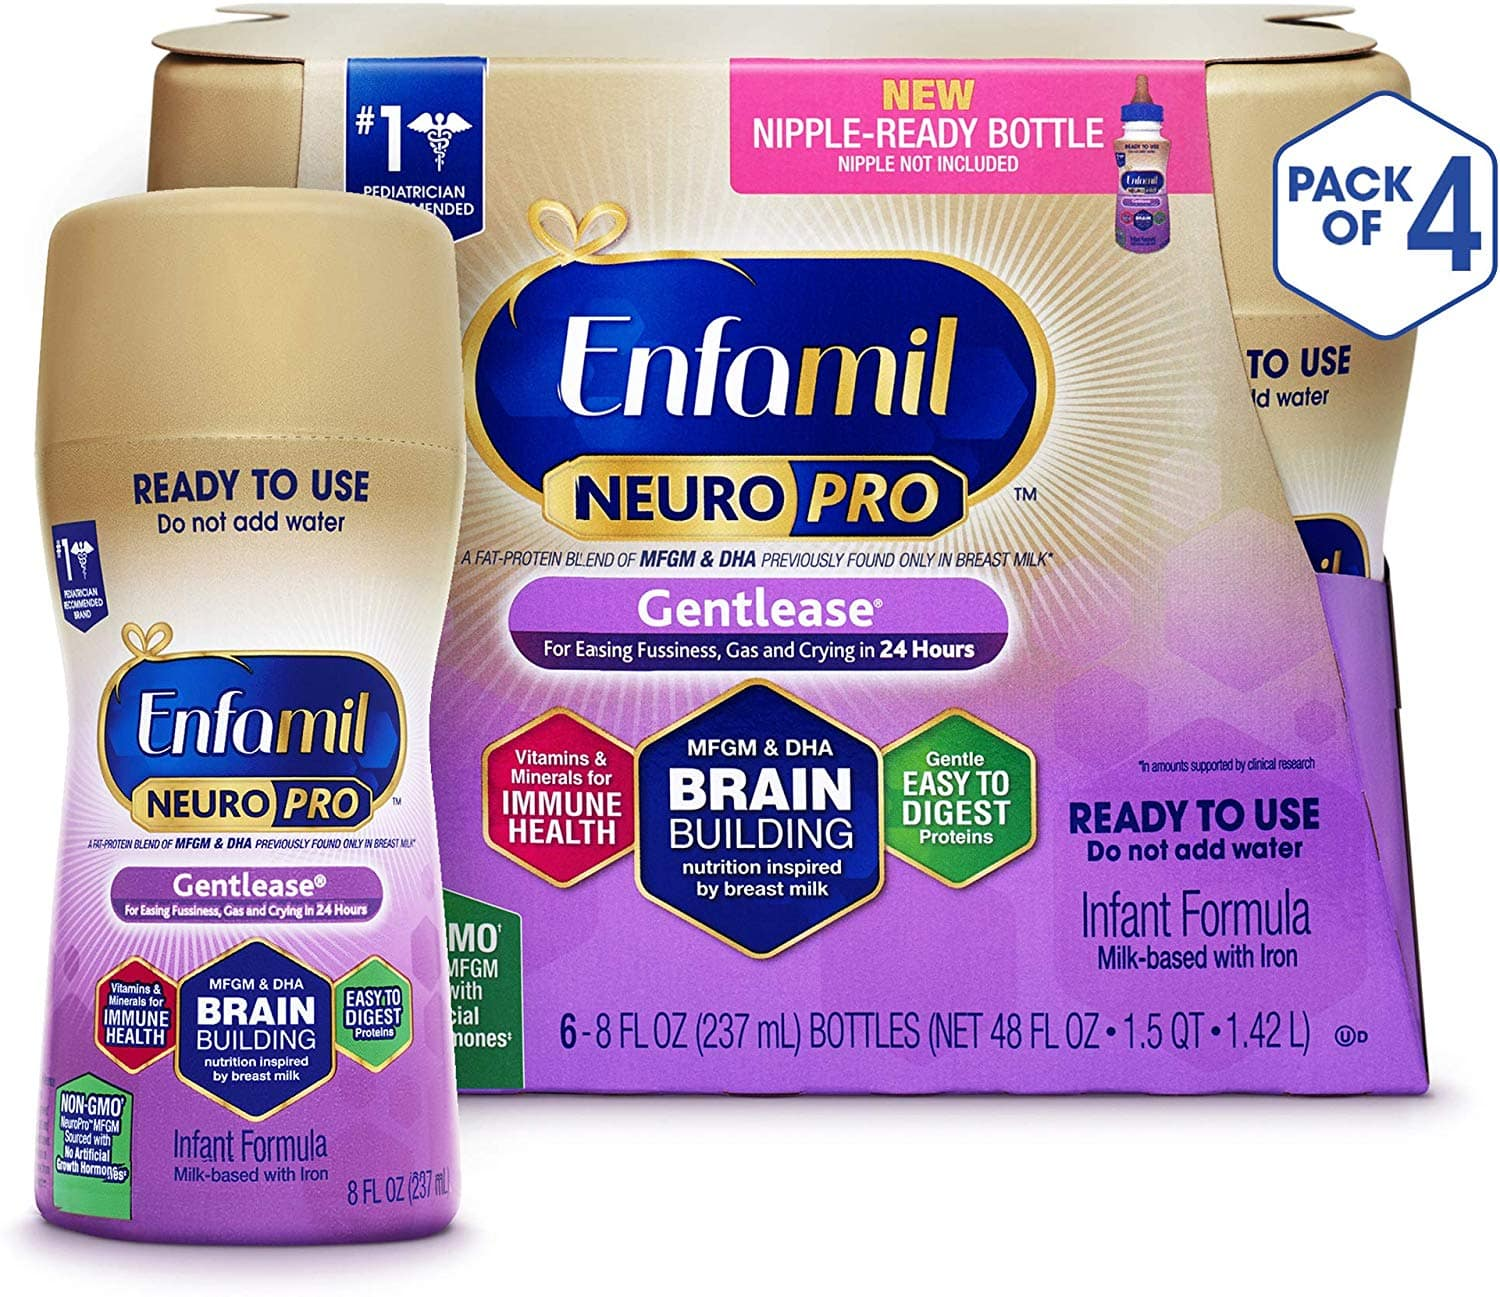 Enfamil Neuropro Gentlease Ready To Feed Baby formula milk, Mfgm, Omega 3 Dha, Probiotics, Iron & Immune Support, 6 Count per pack, 8 Fl Oz, Pack of 4 $56.19 +free s/h